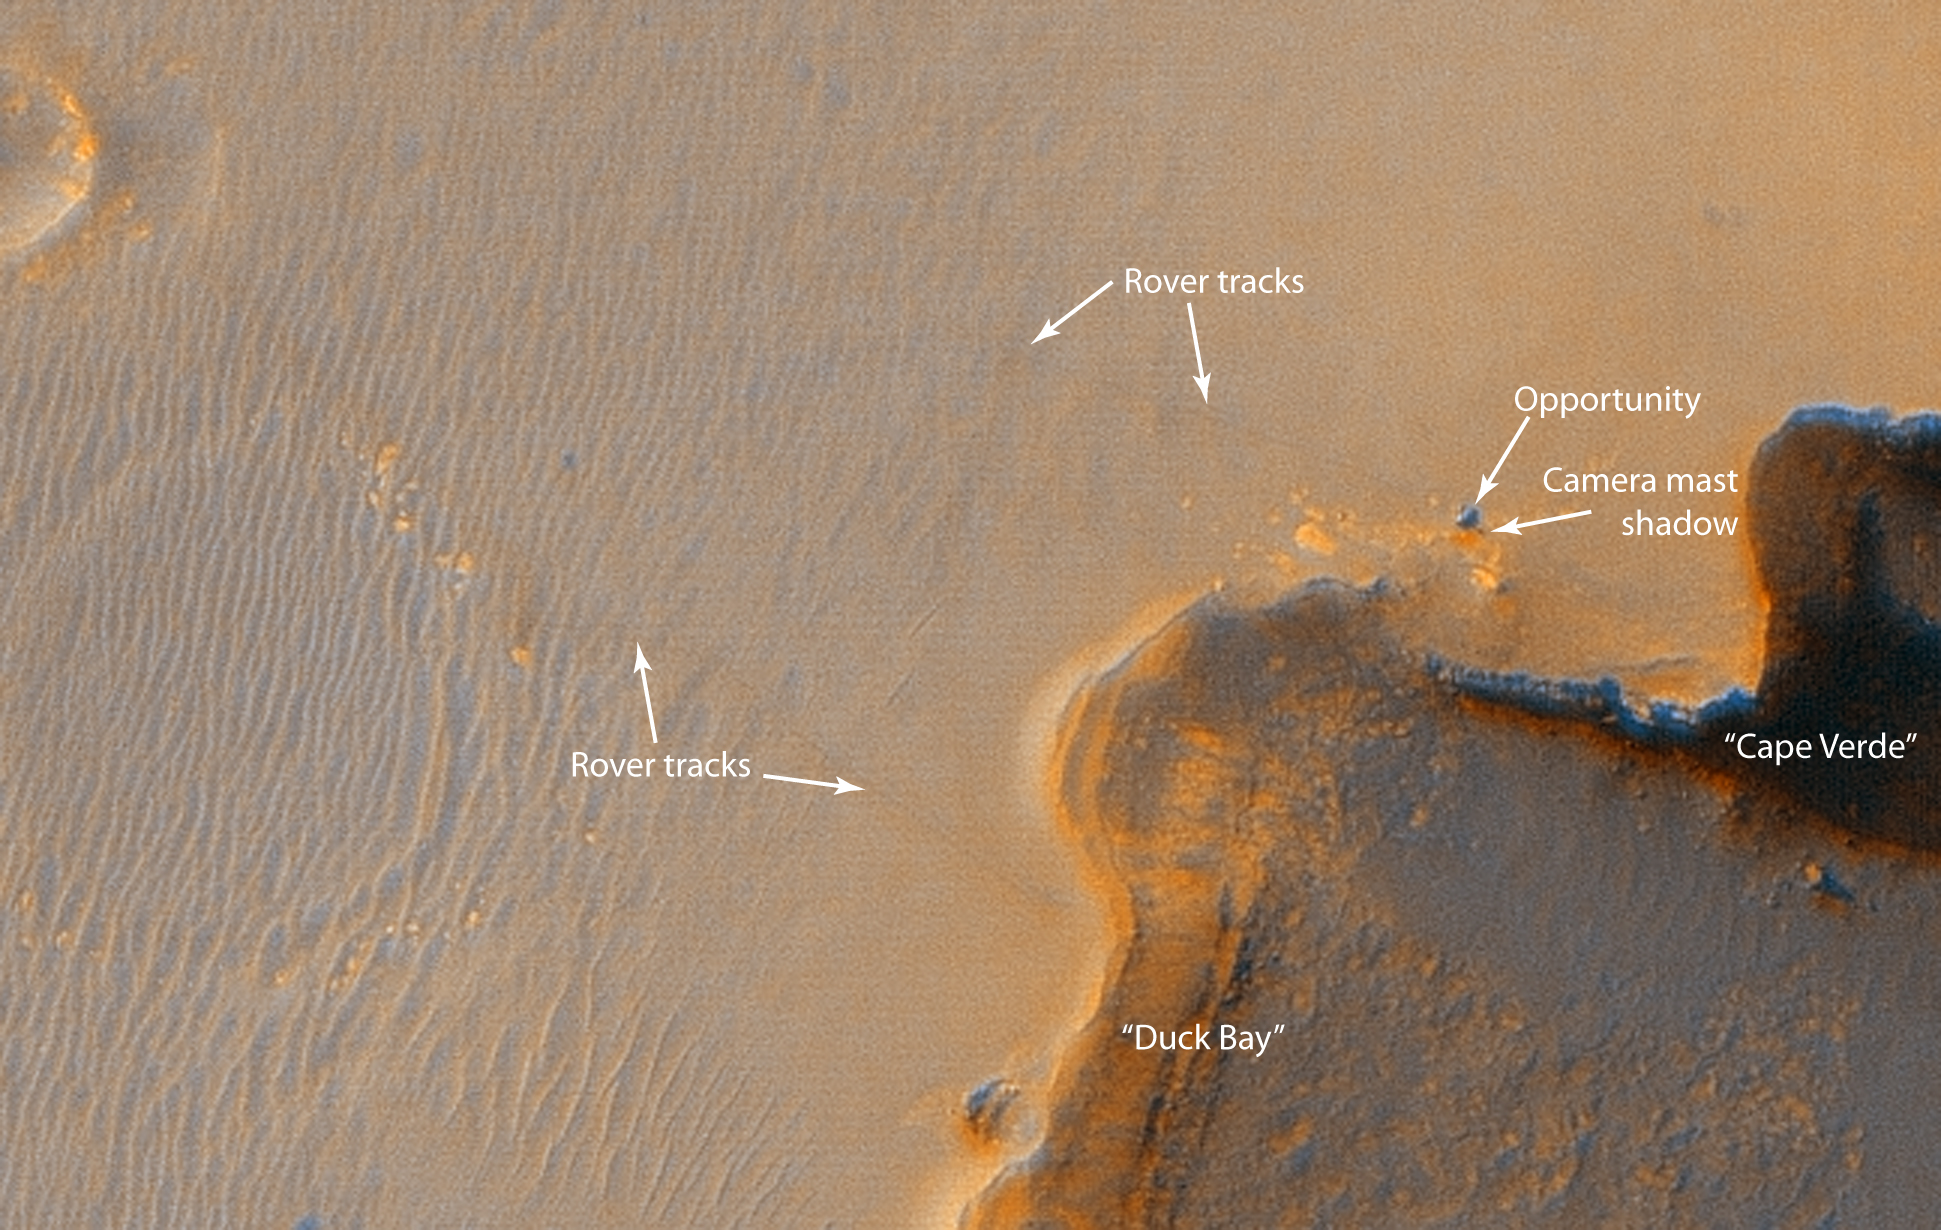 APOD 2006 October 9 Mars Rover at Victoria Crater Imaged from Orbit